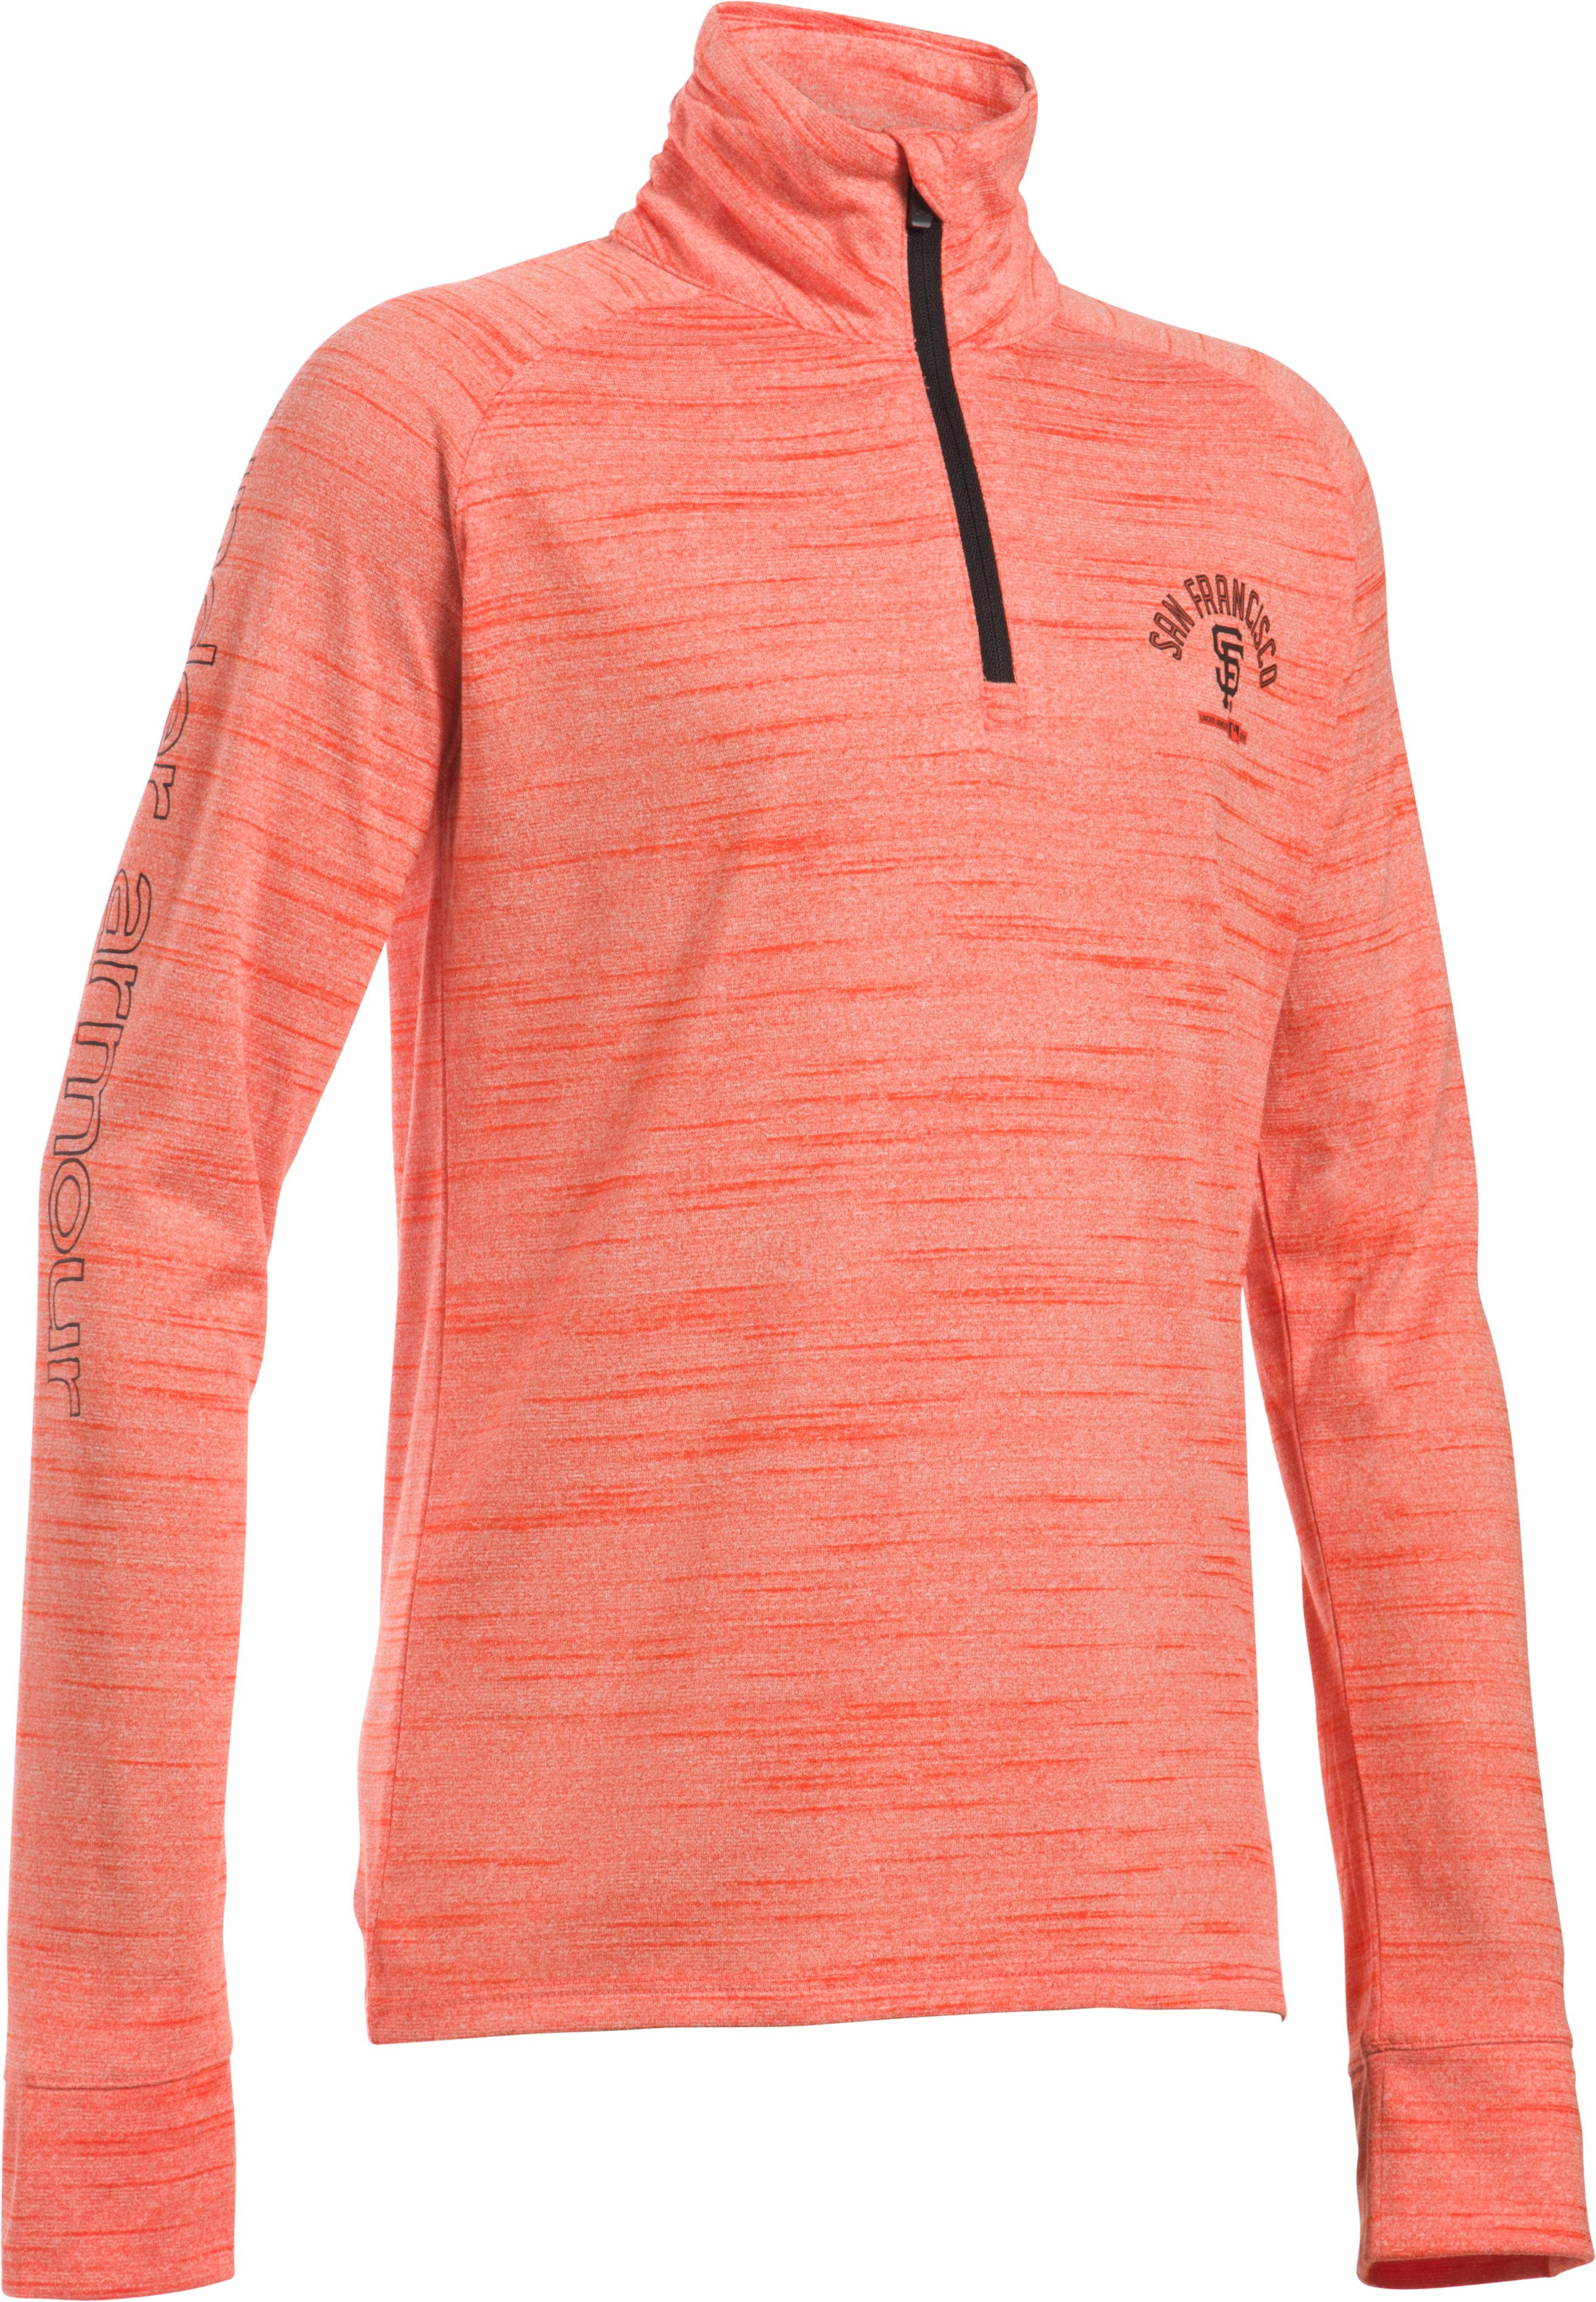 Girls' San Francisco Giants UA Tech™ 1/2 Zip, Dark Orange